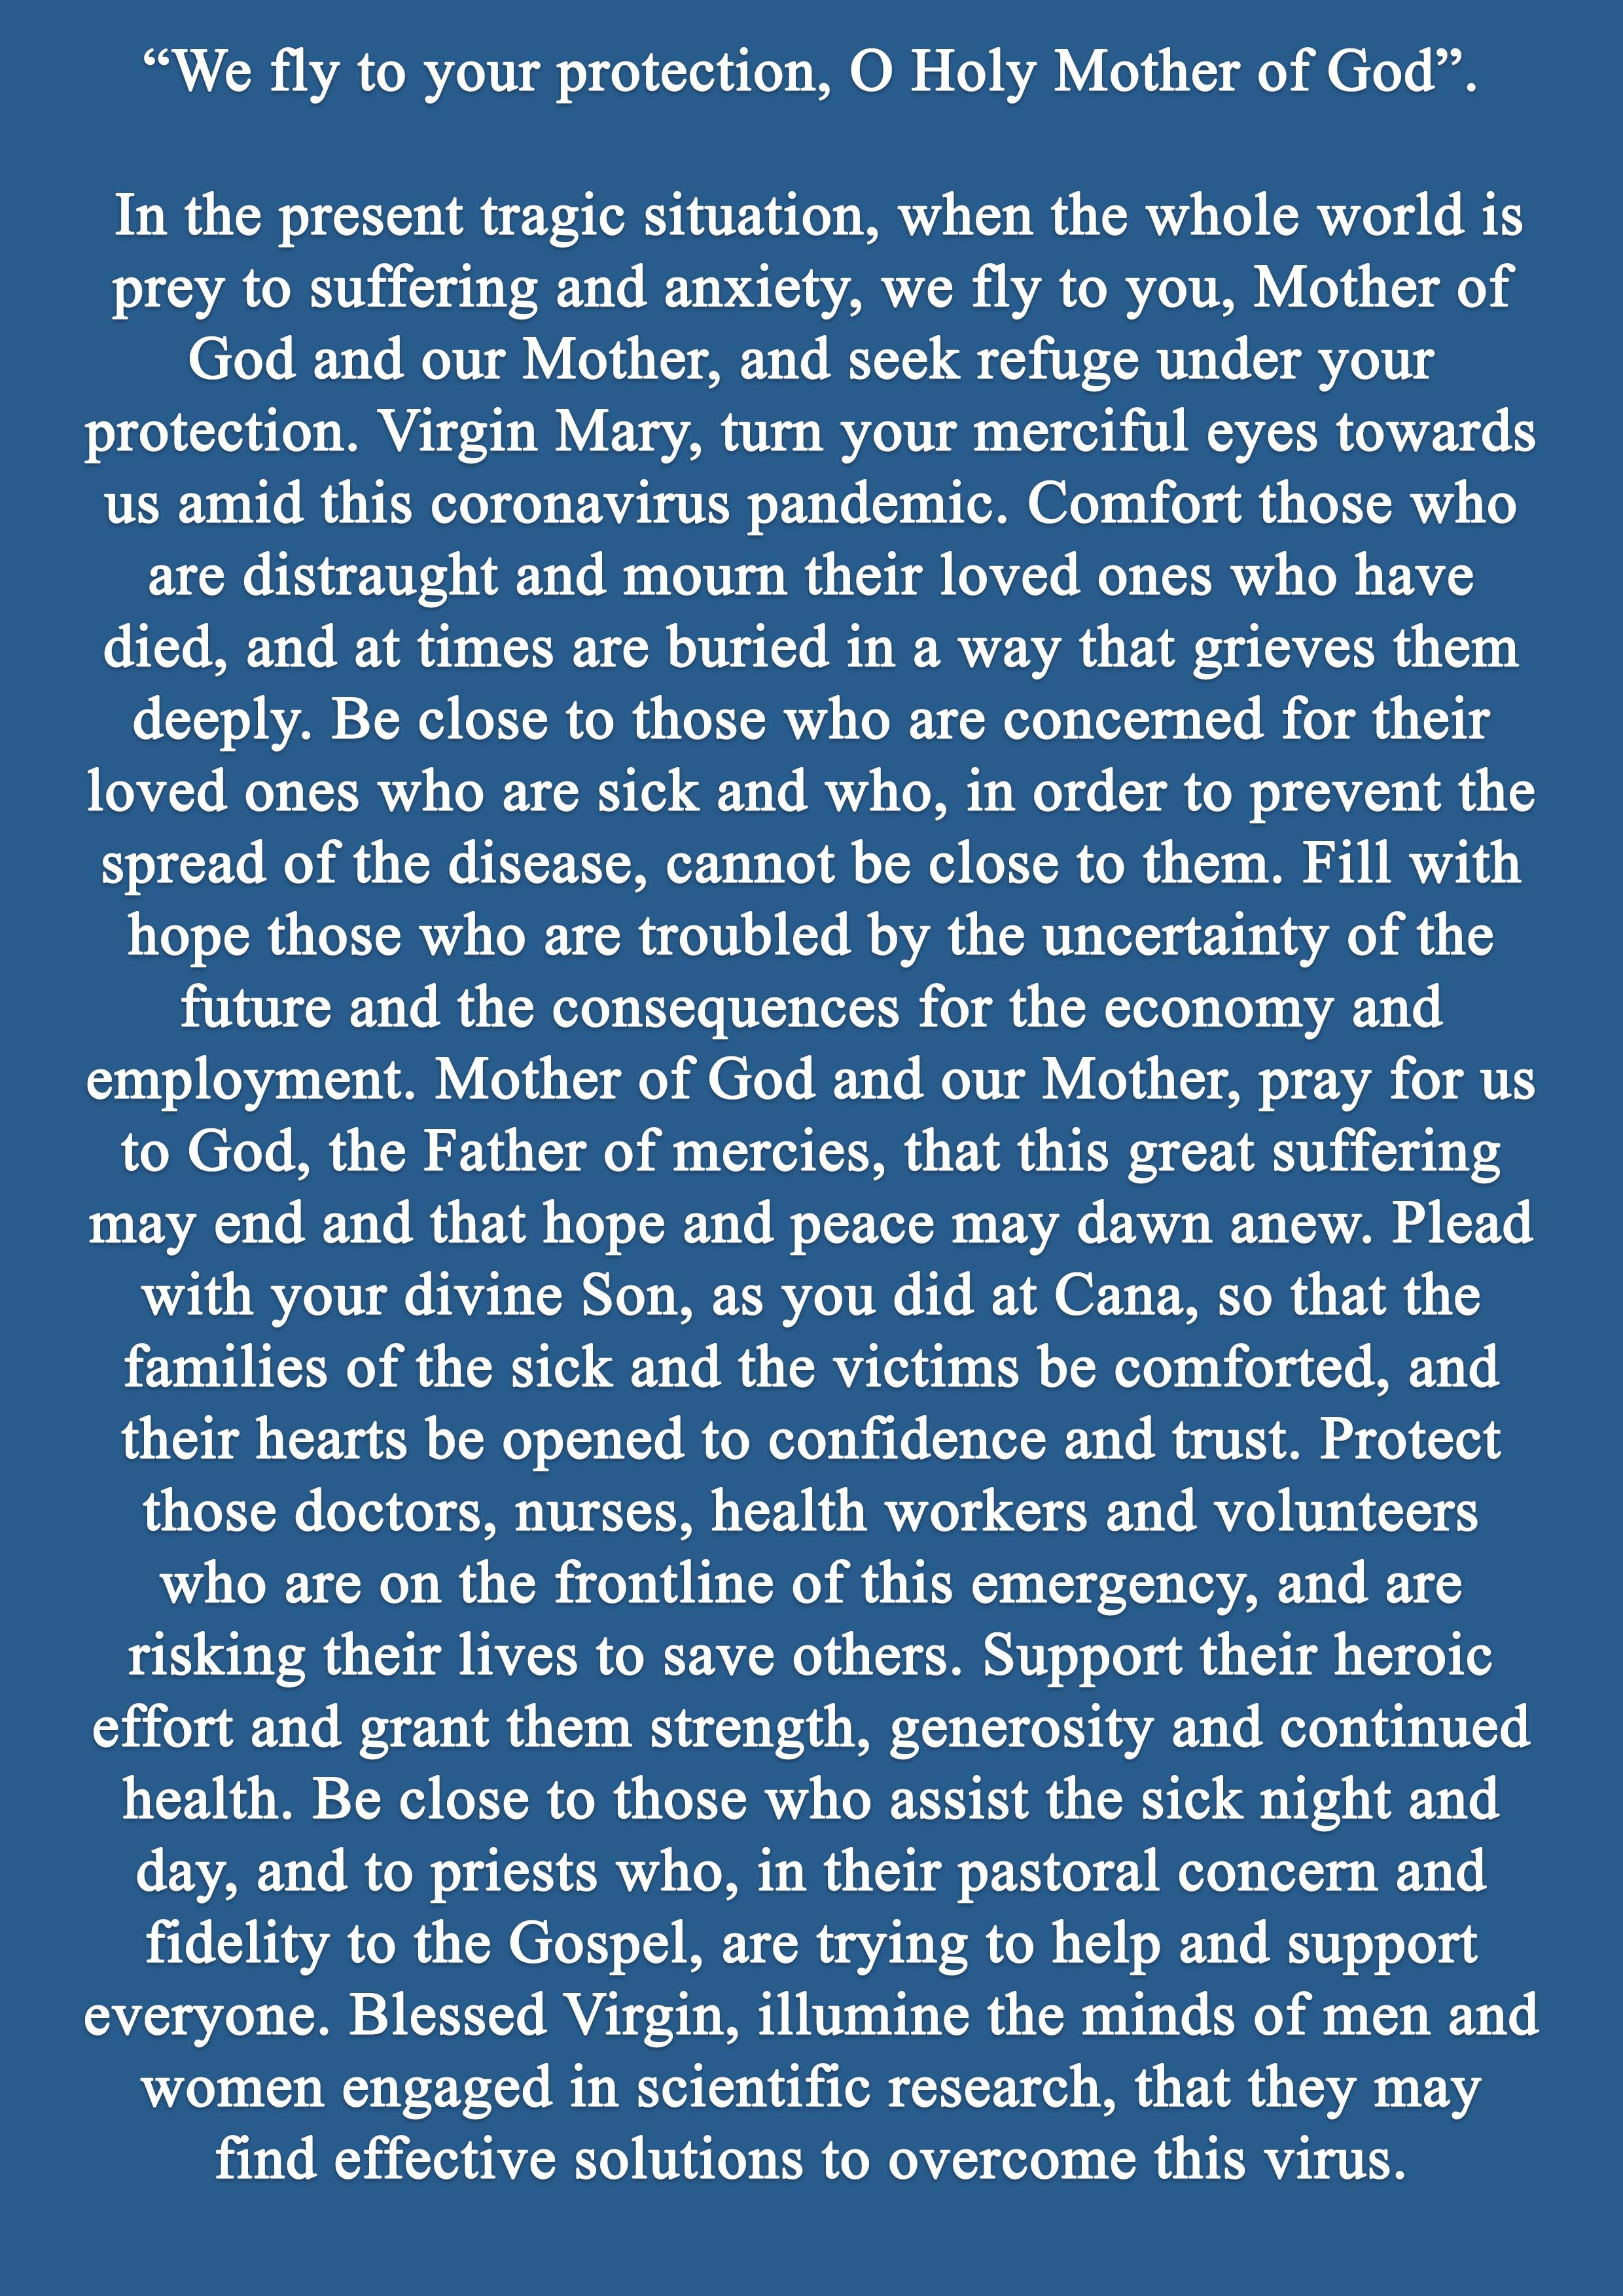 Pope Francis Prayer for May 3a